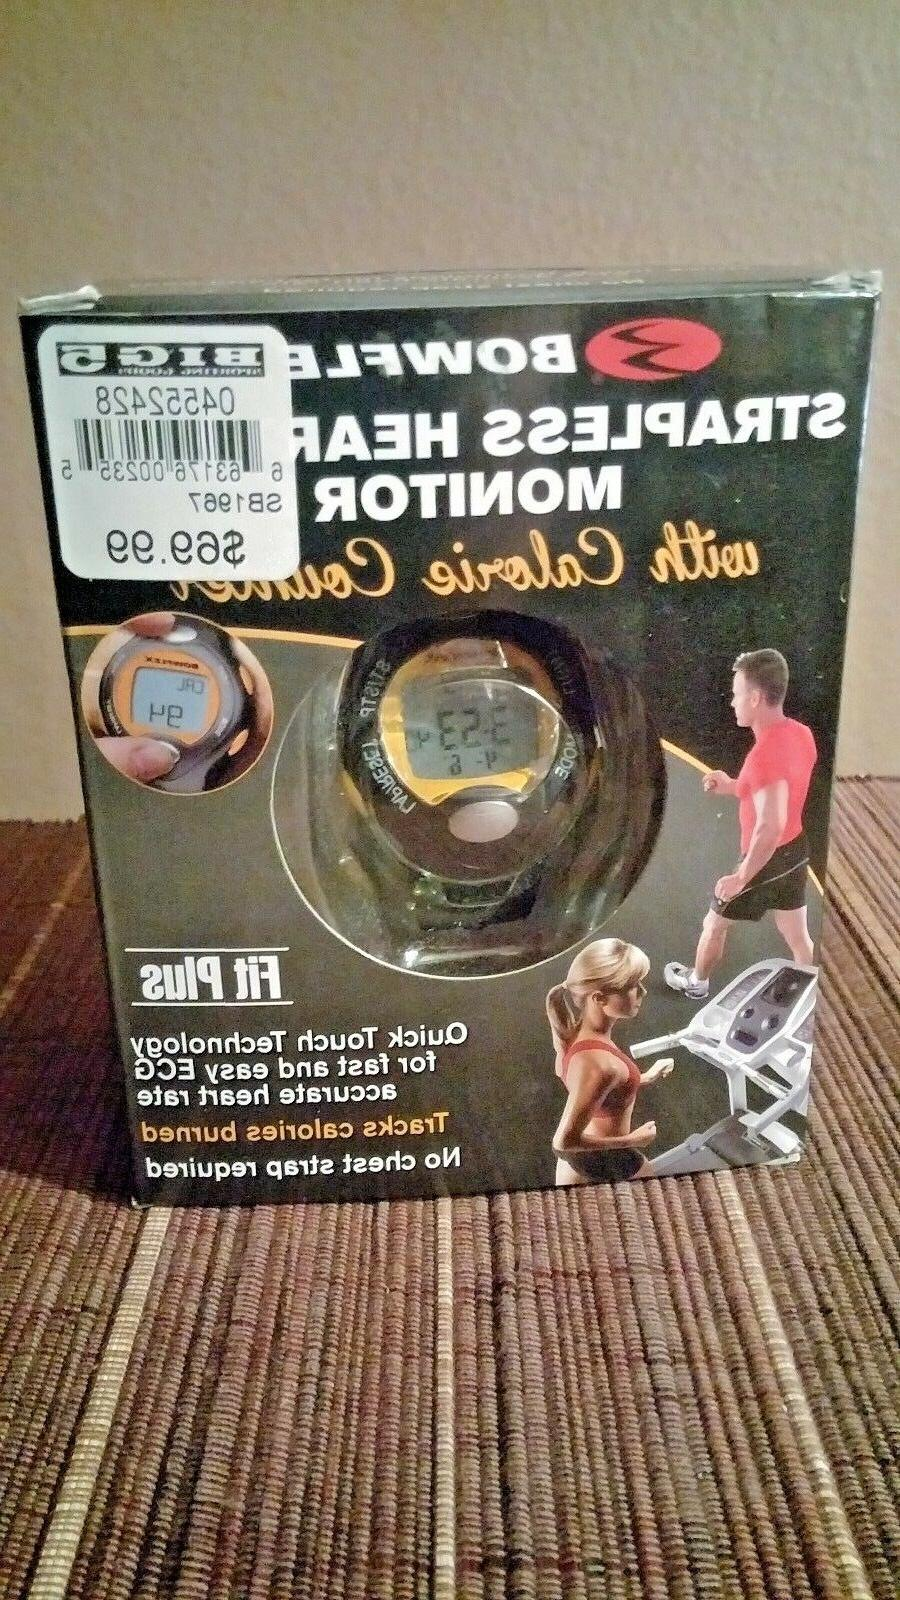 strapless heart rate monitor and calorie counter